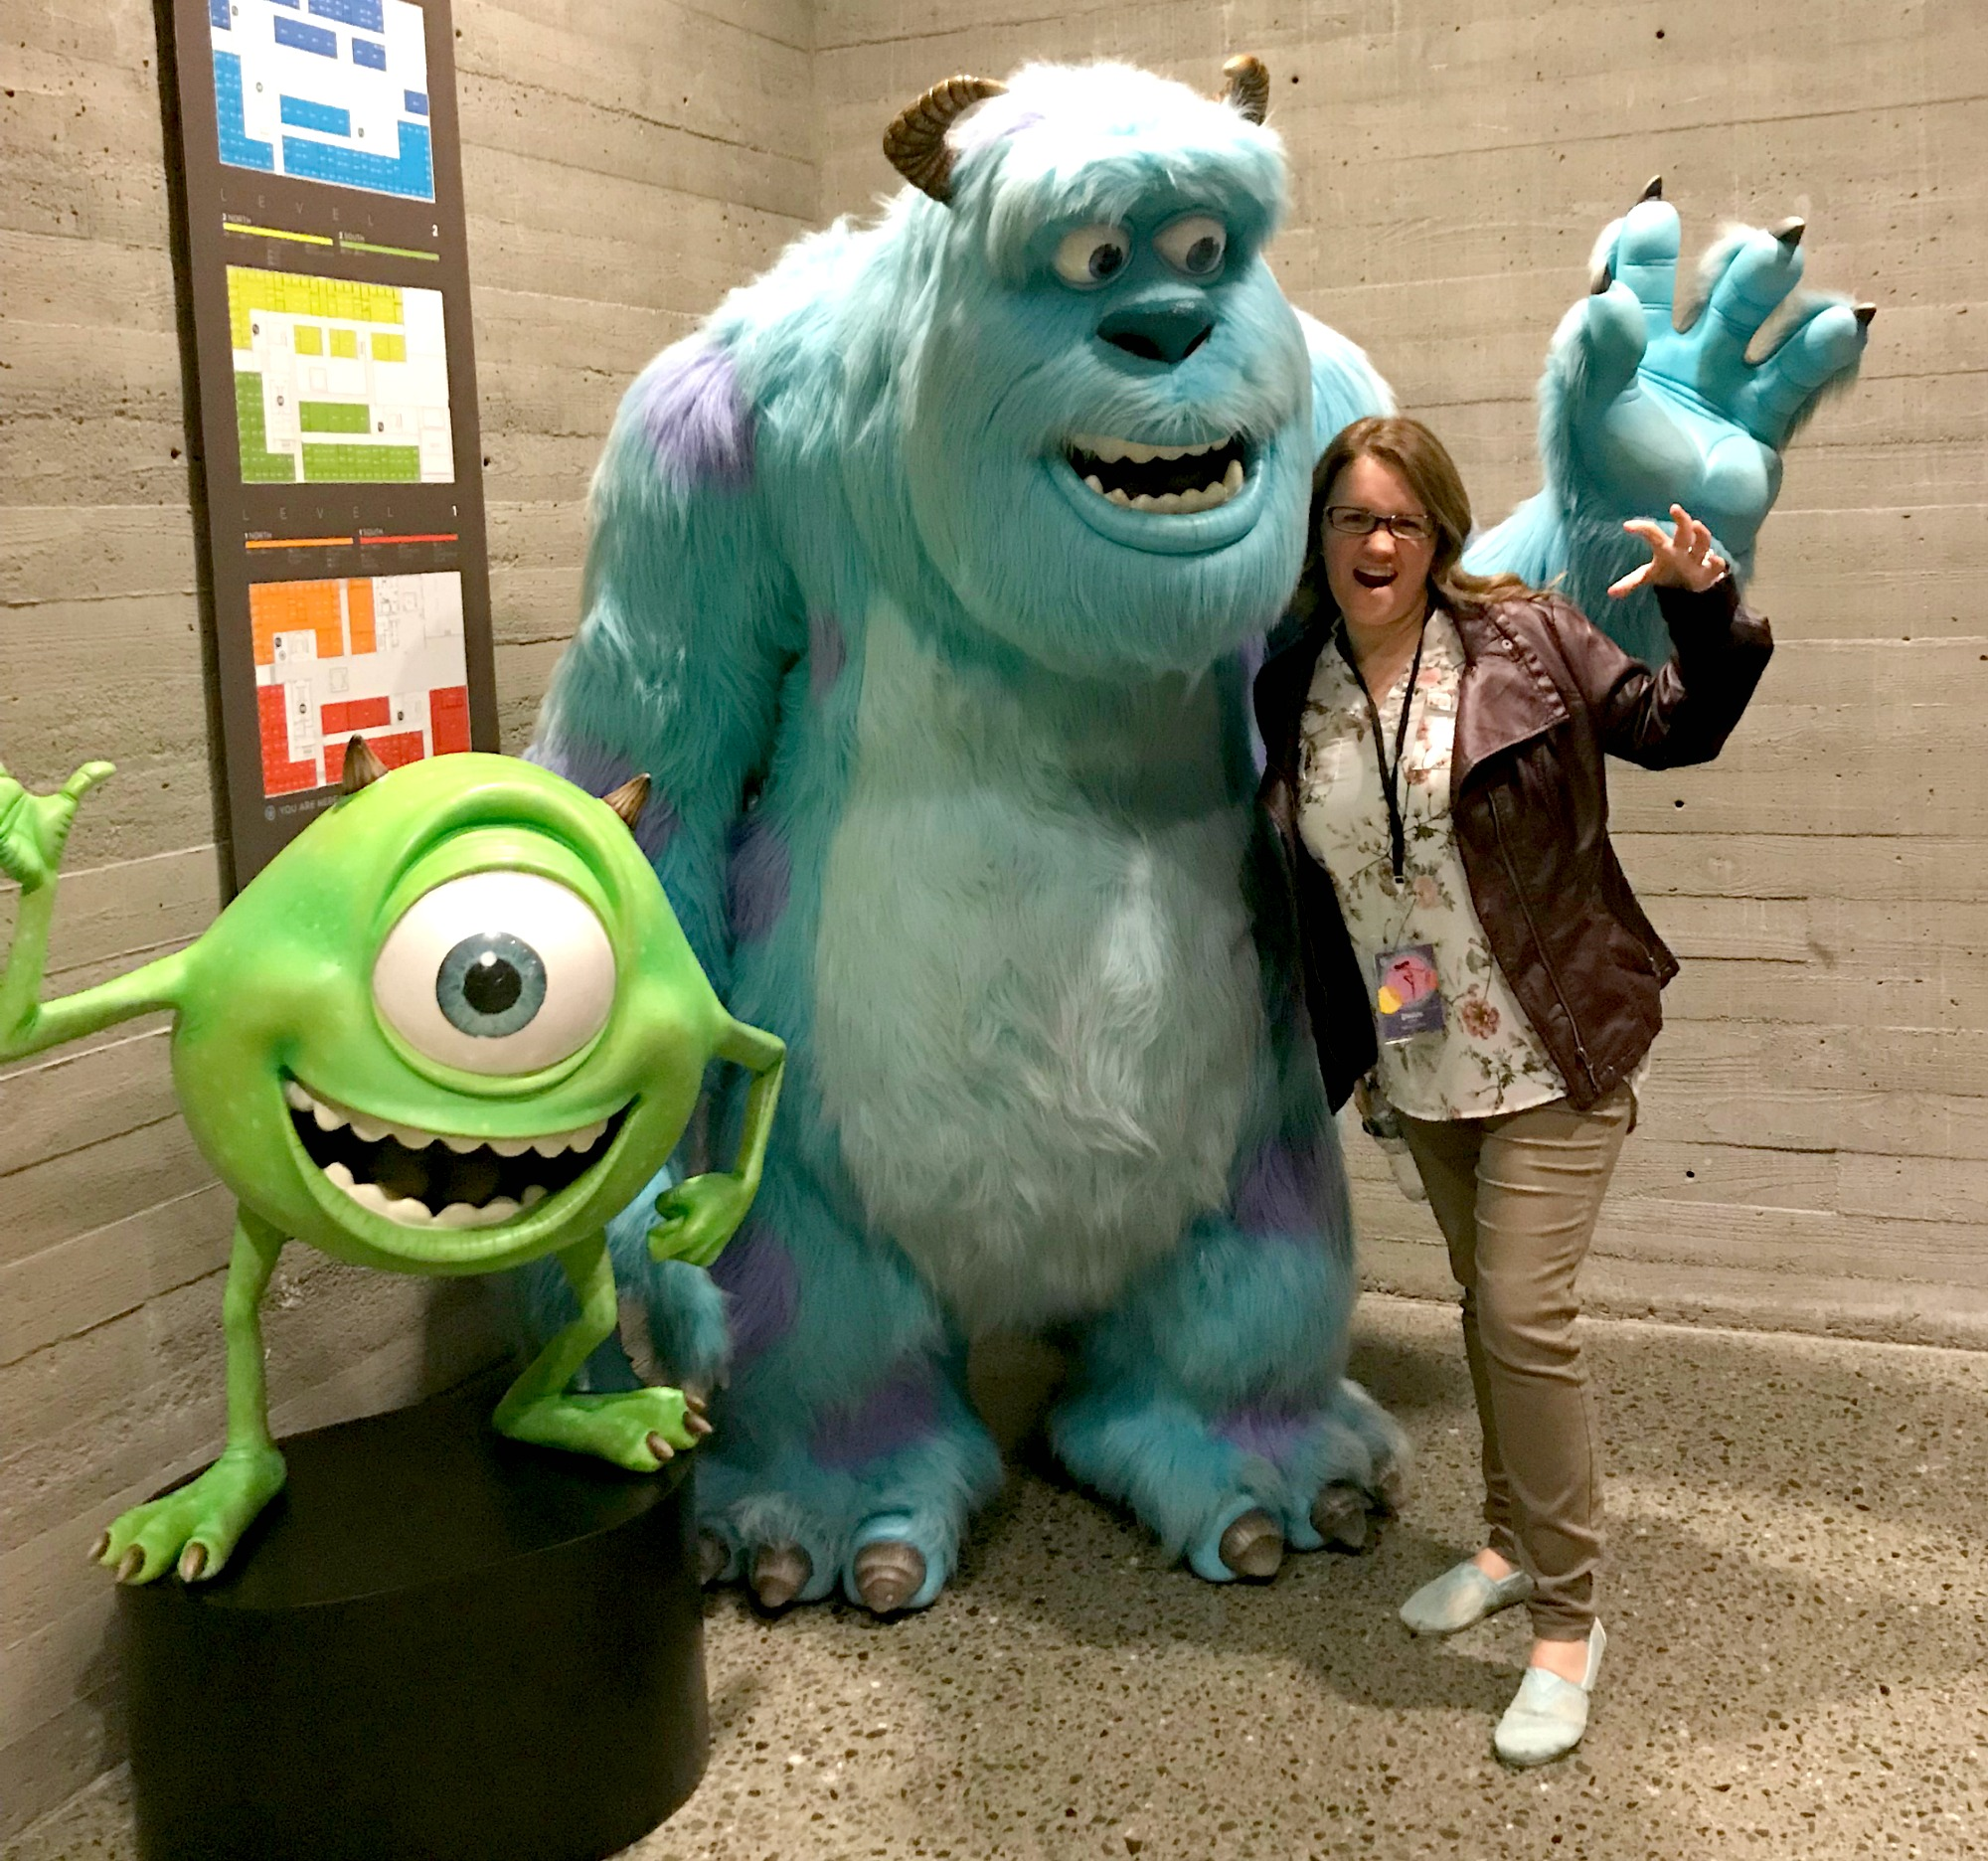 Dwan with Sully at Pixar Studios